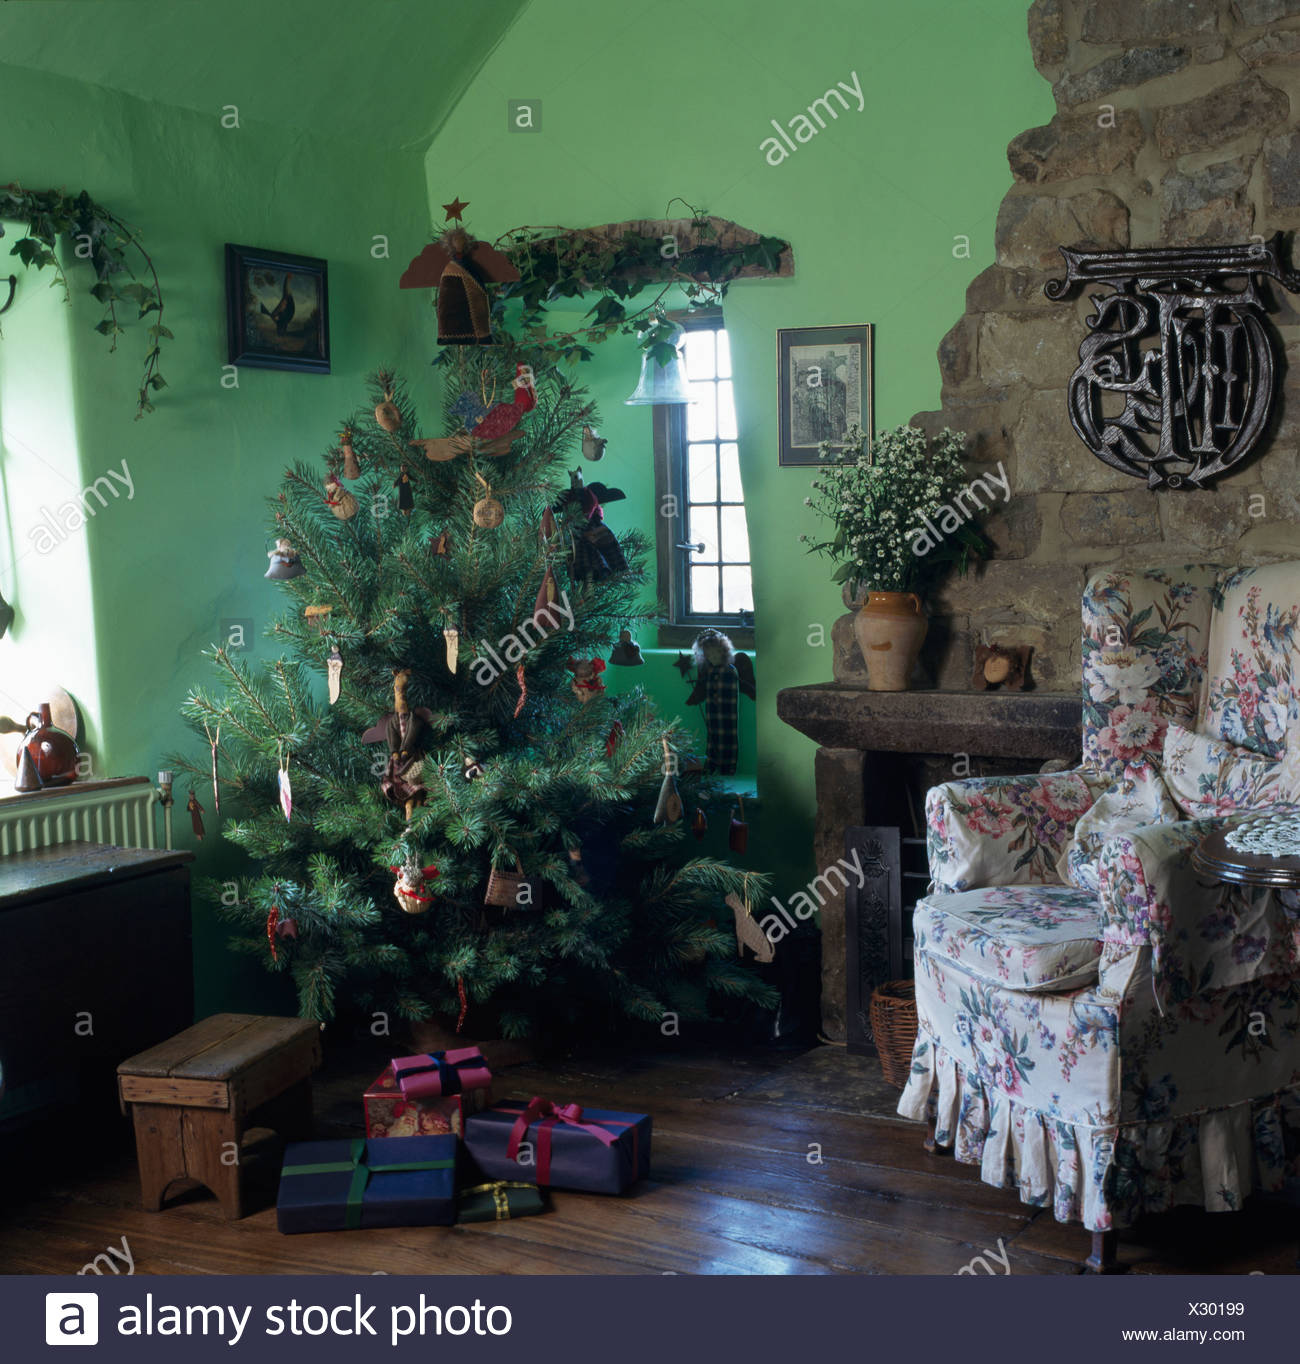 Christmas Tree In Corner Of Green Cottage Living Room With Wooden